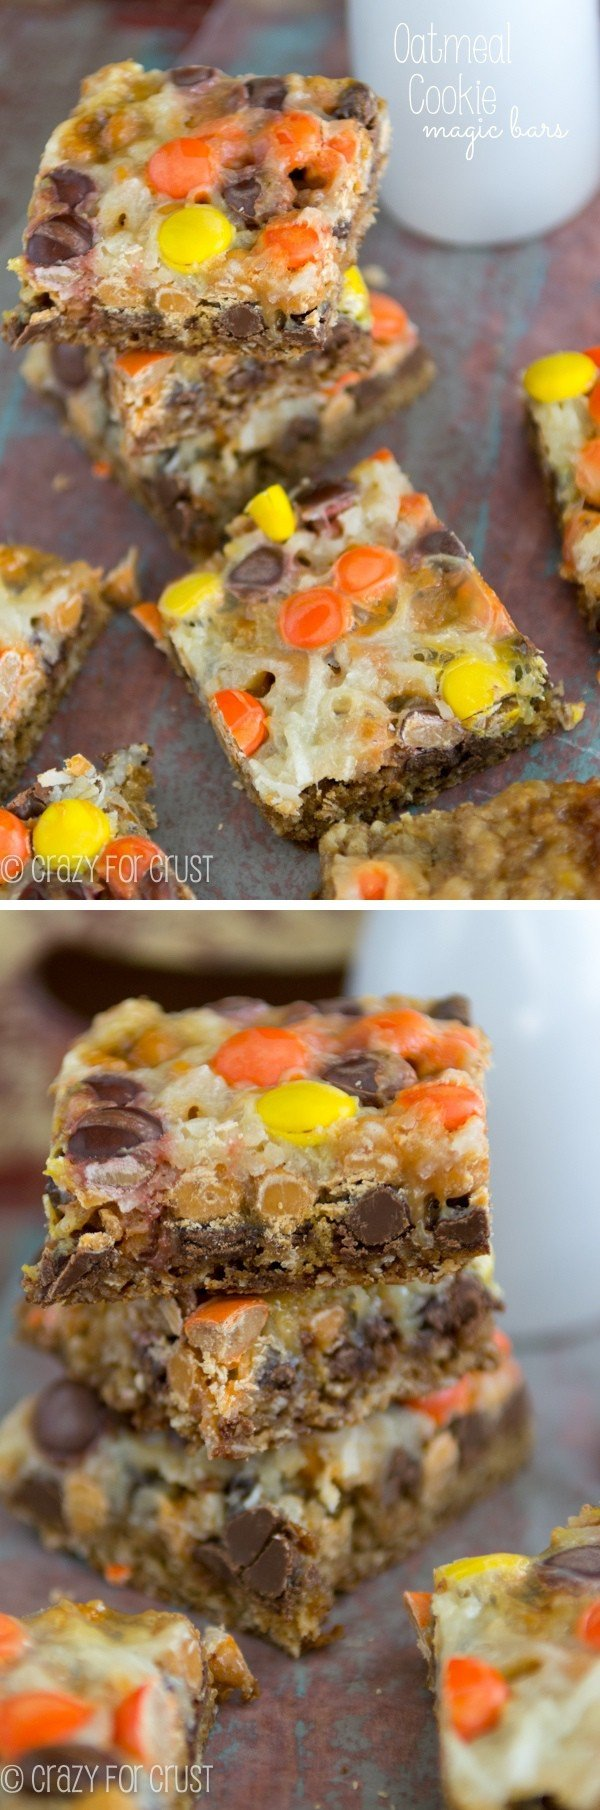 Oatmeal Cookie Magic Bars | crazyforcrust.com | Magic bars filled with the flavors of an Oatmeal Cookie!